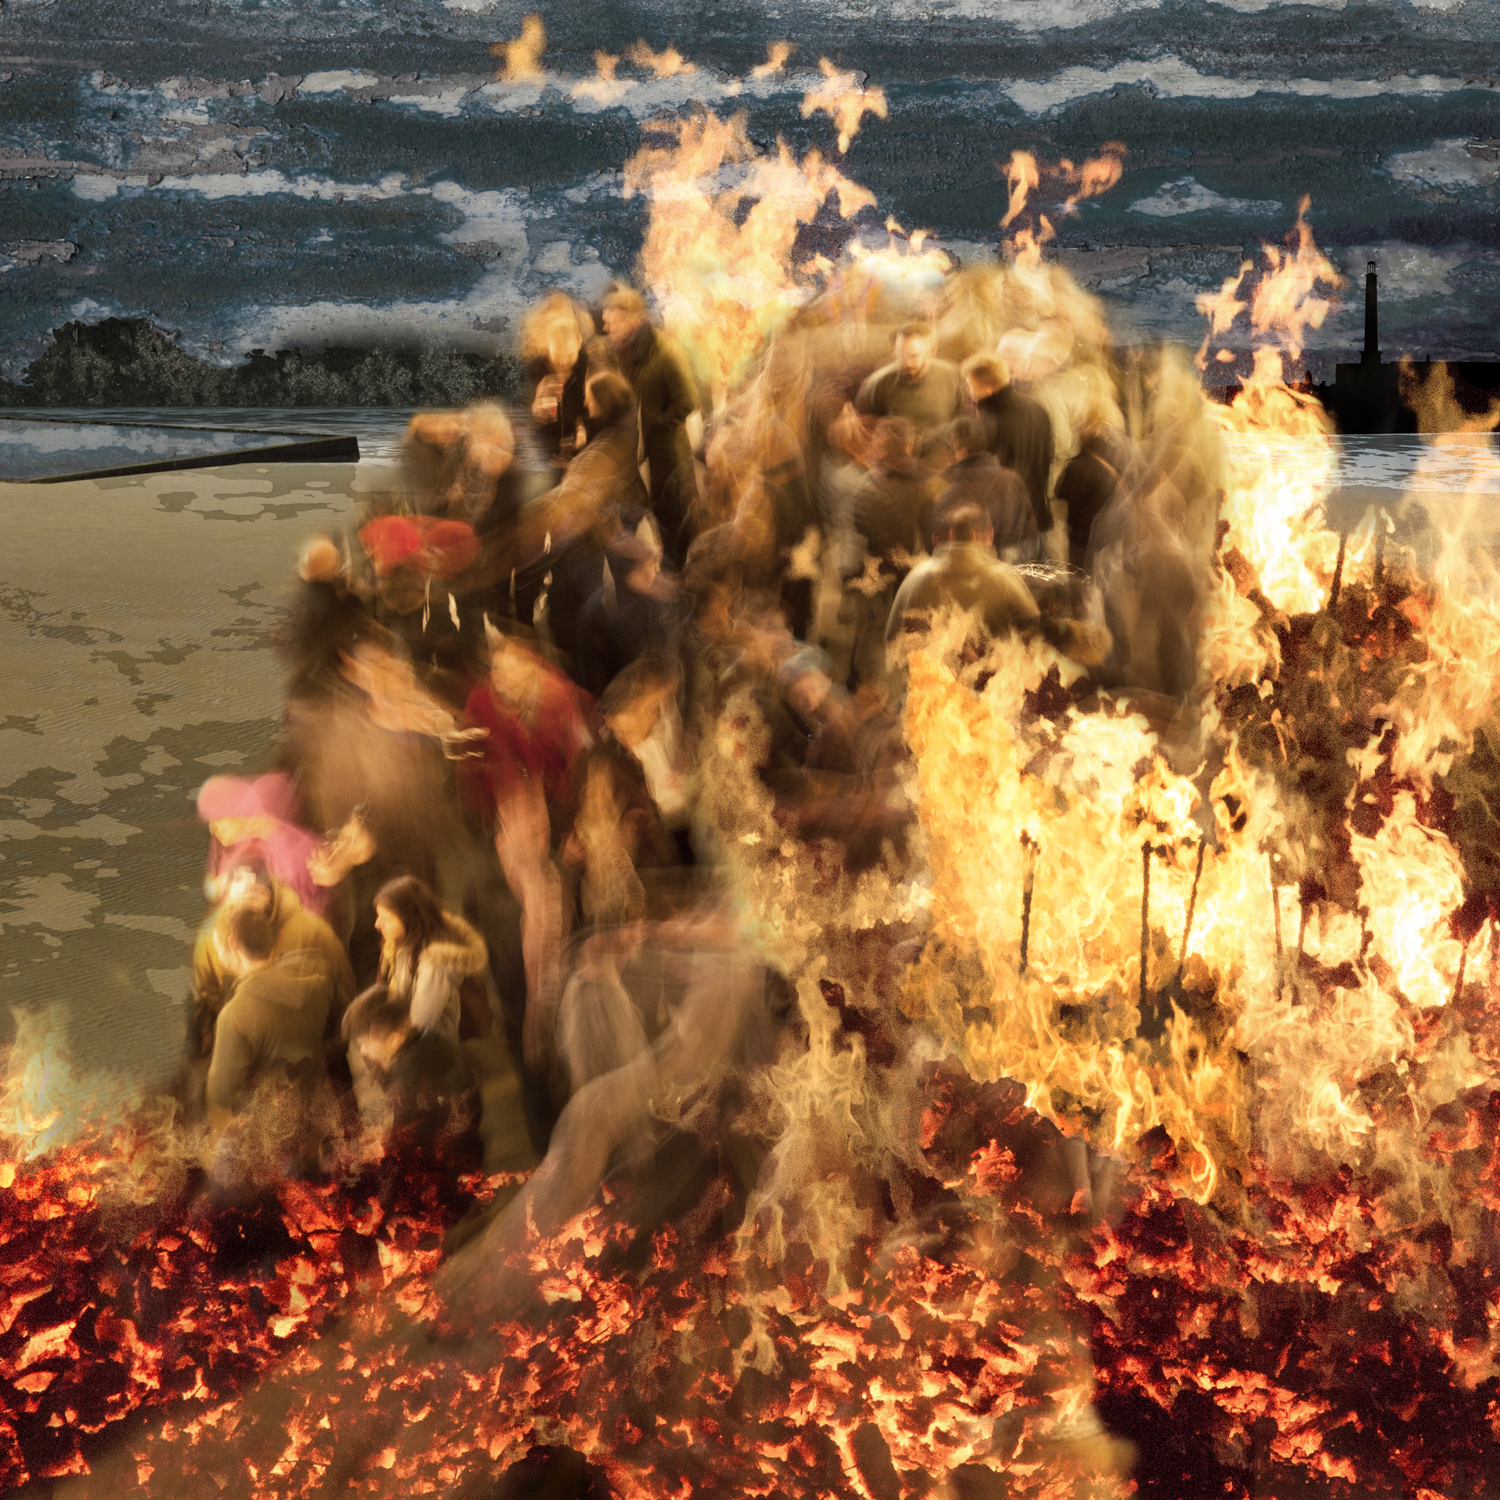 Claire Gill, Artist, Digital Photomontage, The Wasteland by TS Eliot, The Fire Sermon, On Margate Sands, Lombard Street Gallery, The Wasteland, TS Eliot, Photomontage, Limited Edition Print, Margate, hands, sea